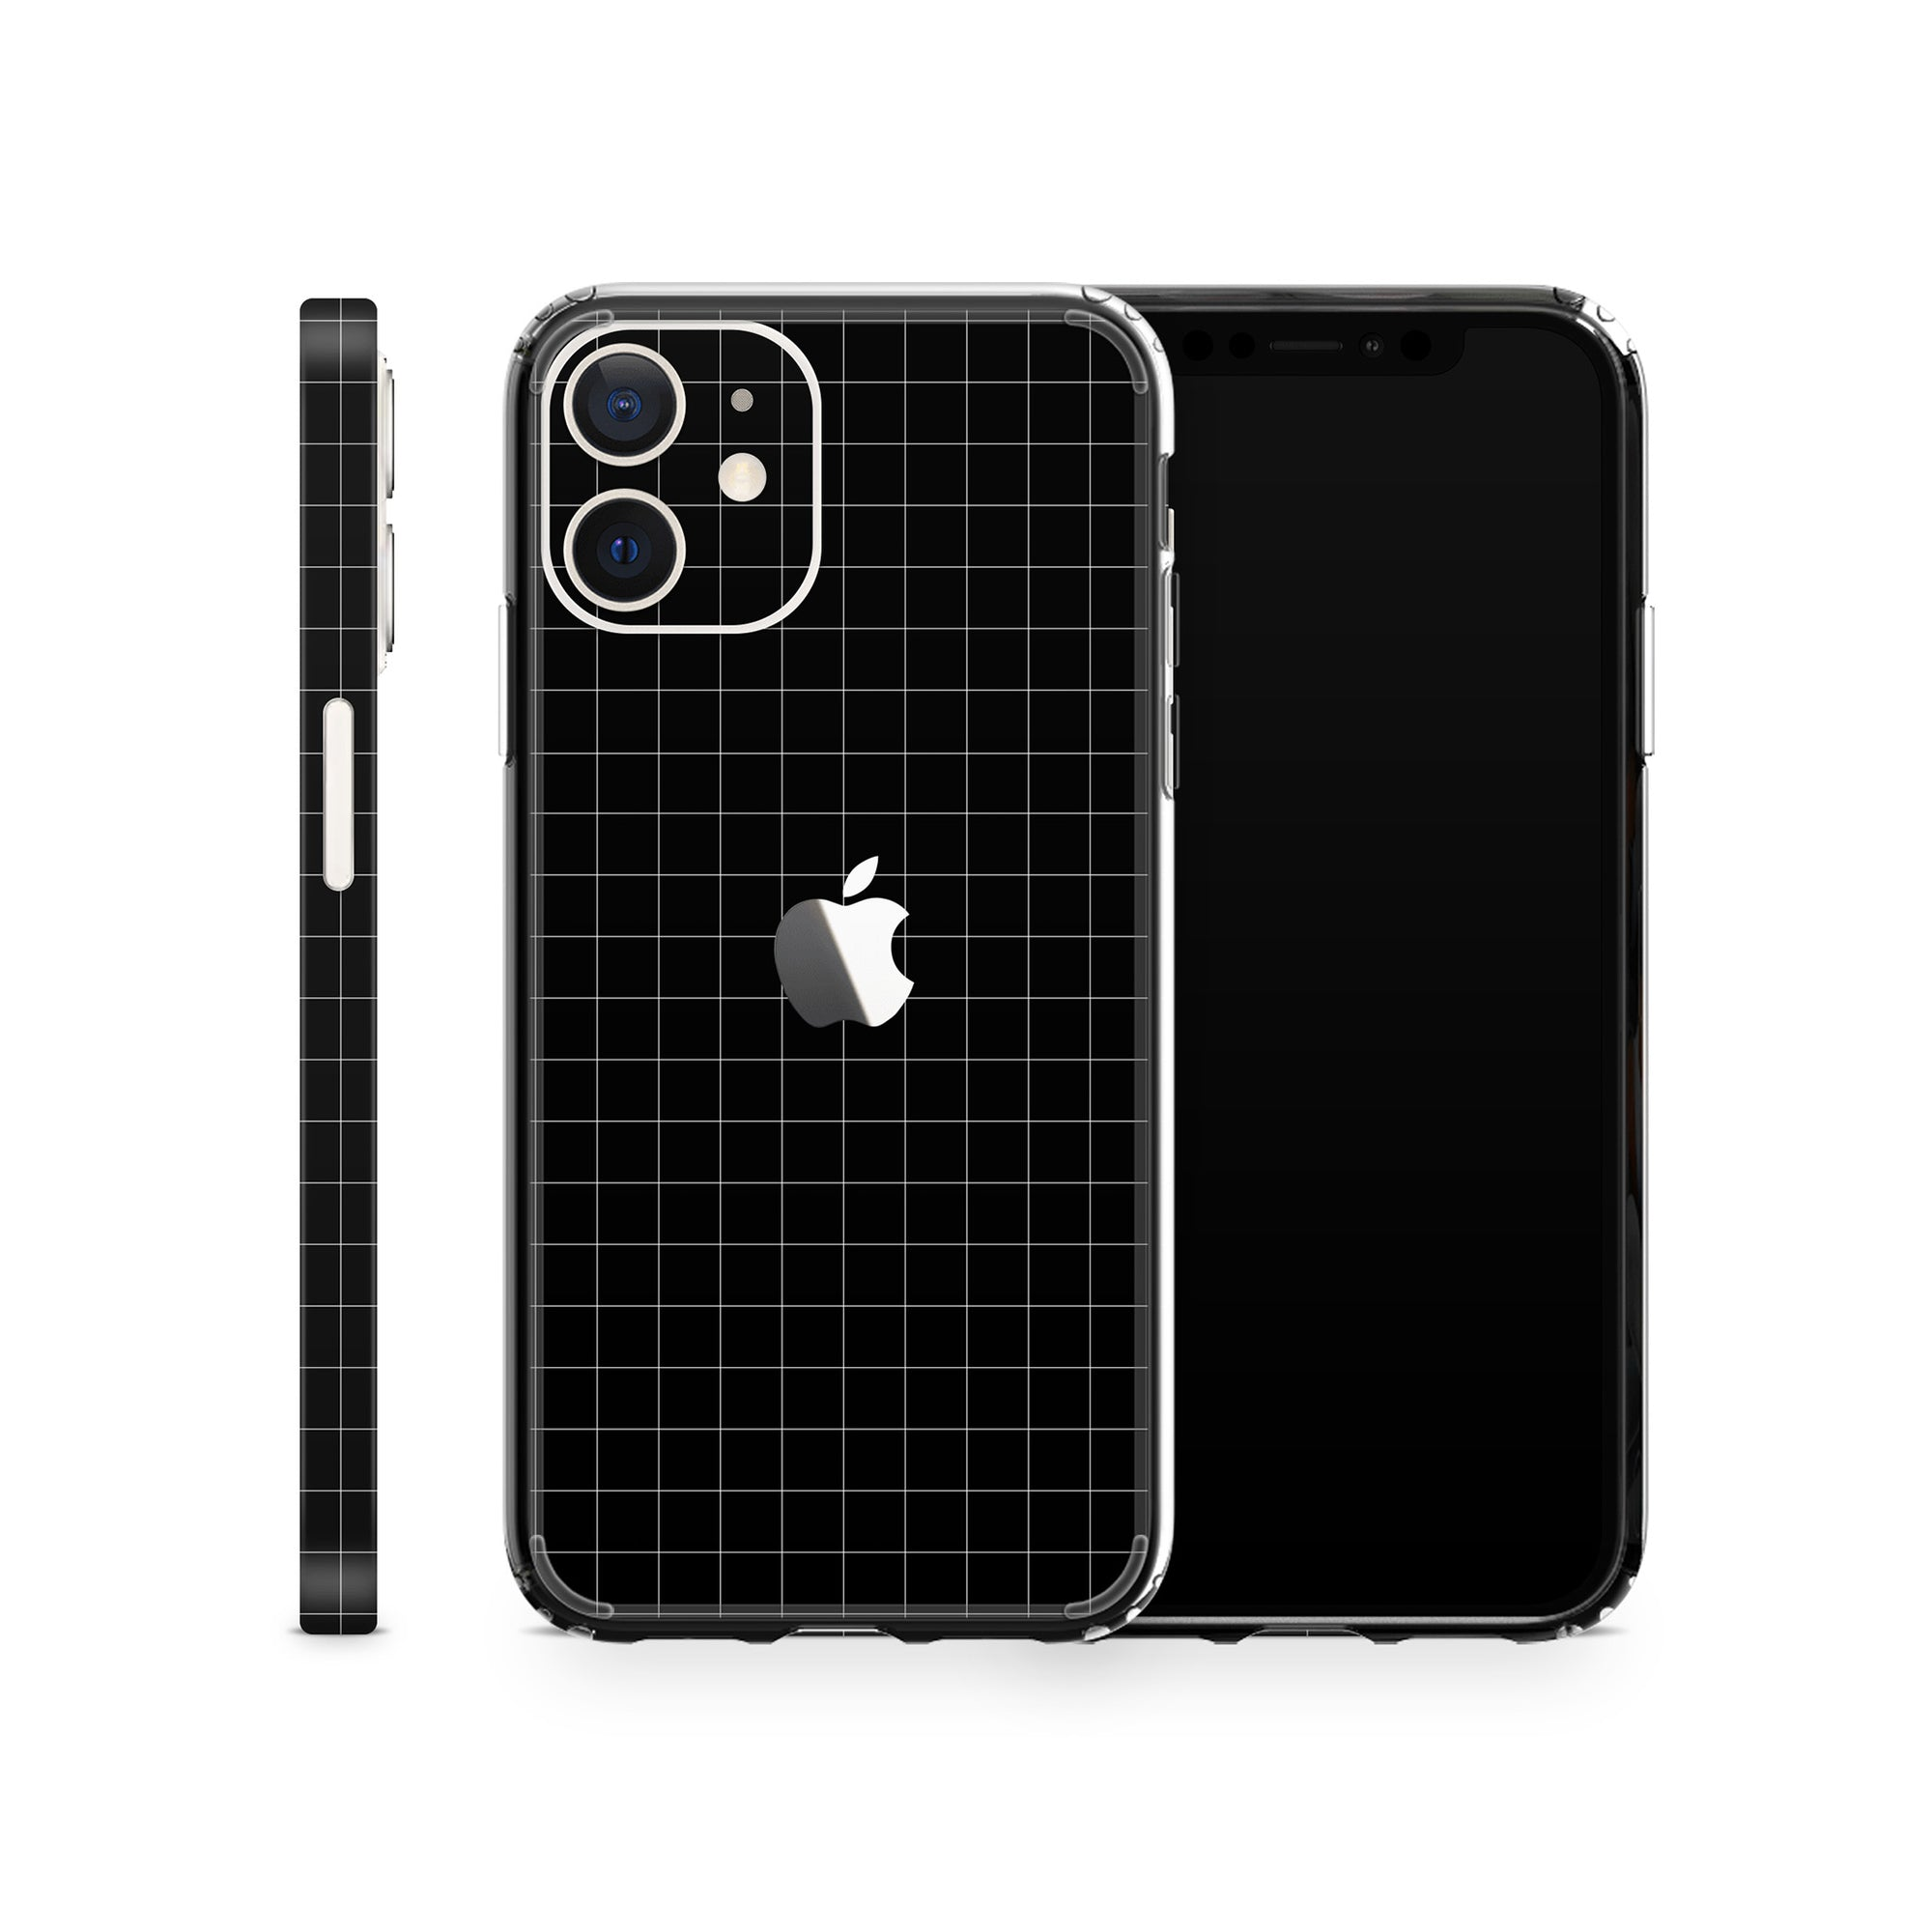 iPhone Case 12 Mini Black Grid